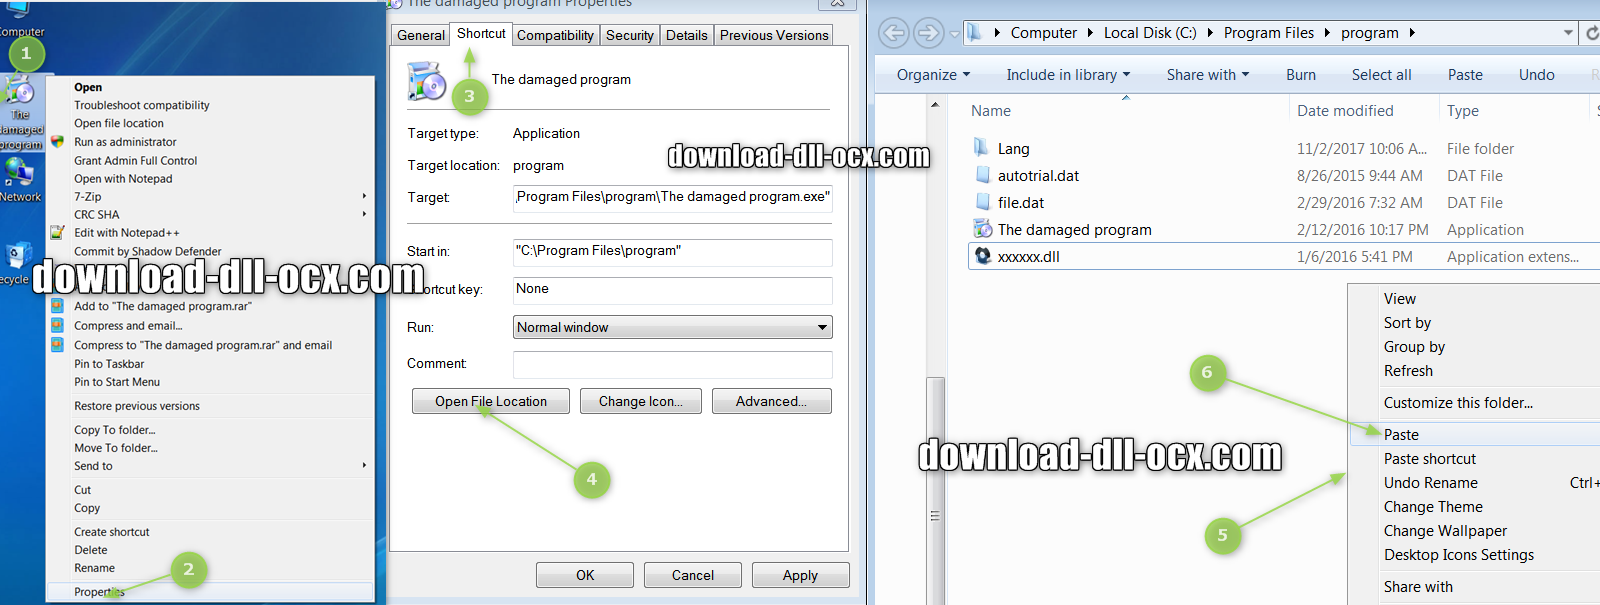 how to install xdebug-5.1-2.0.0beta1.dll file? for fix missing